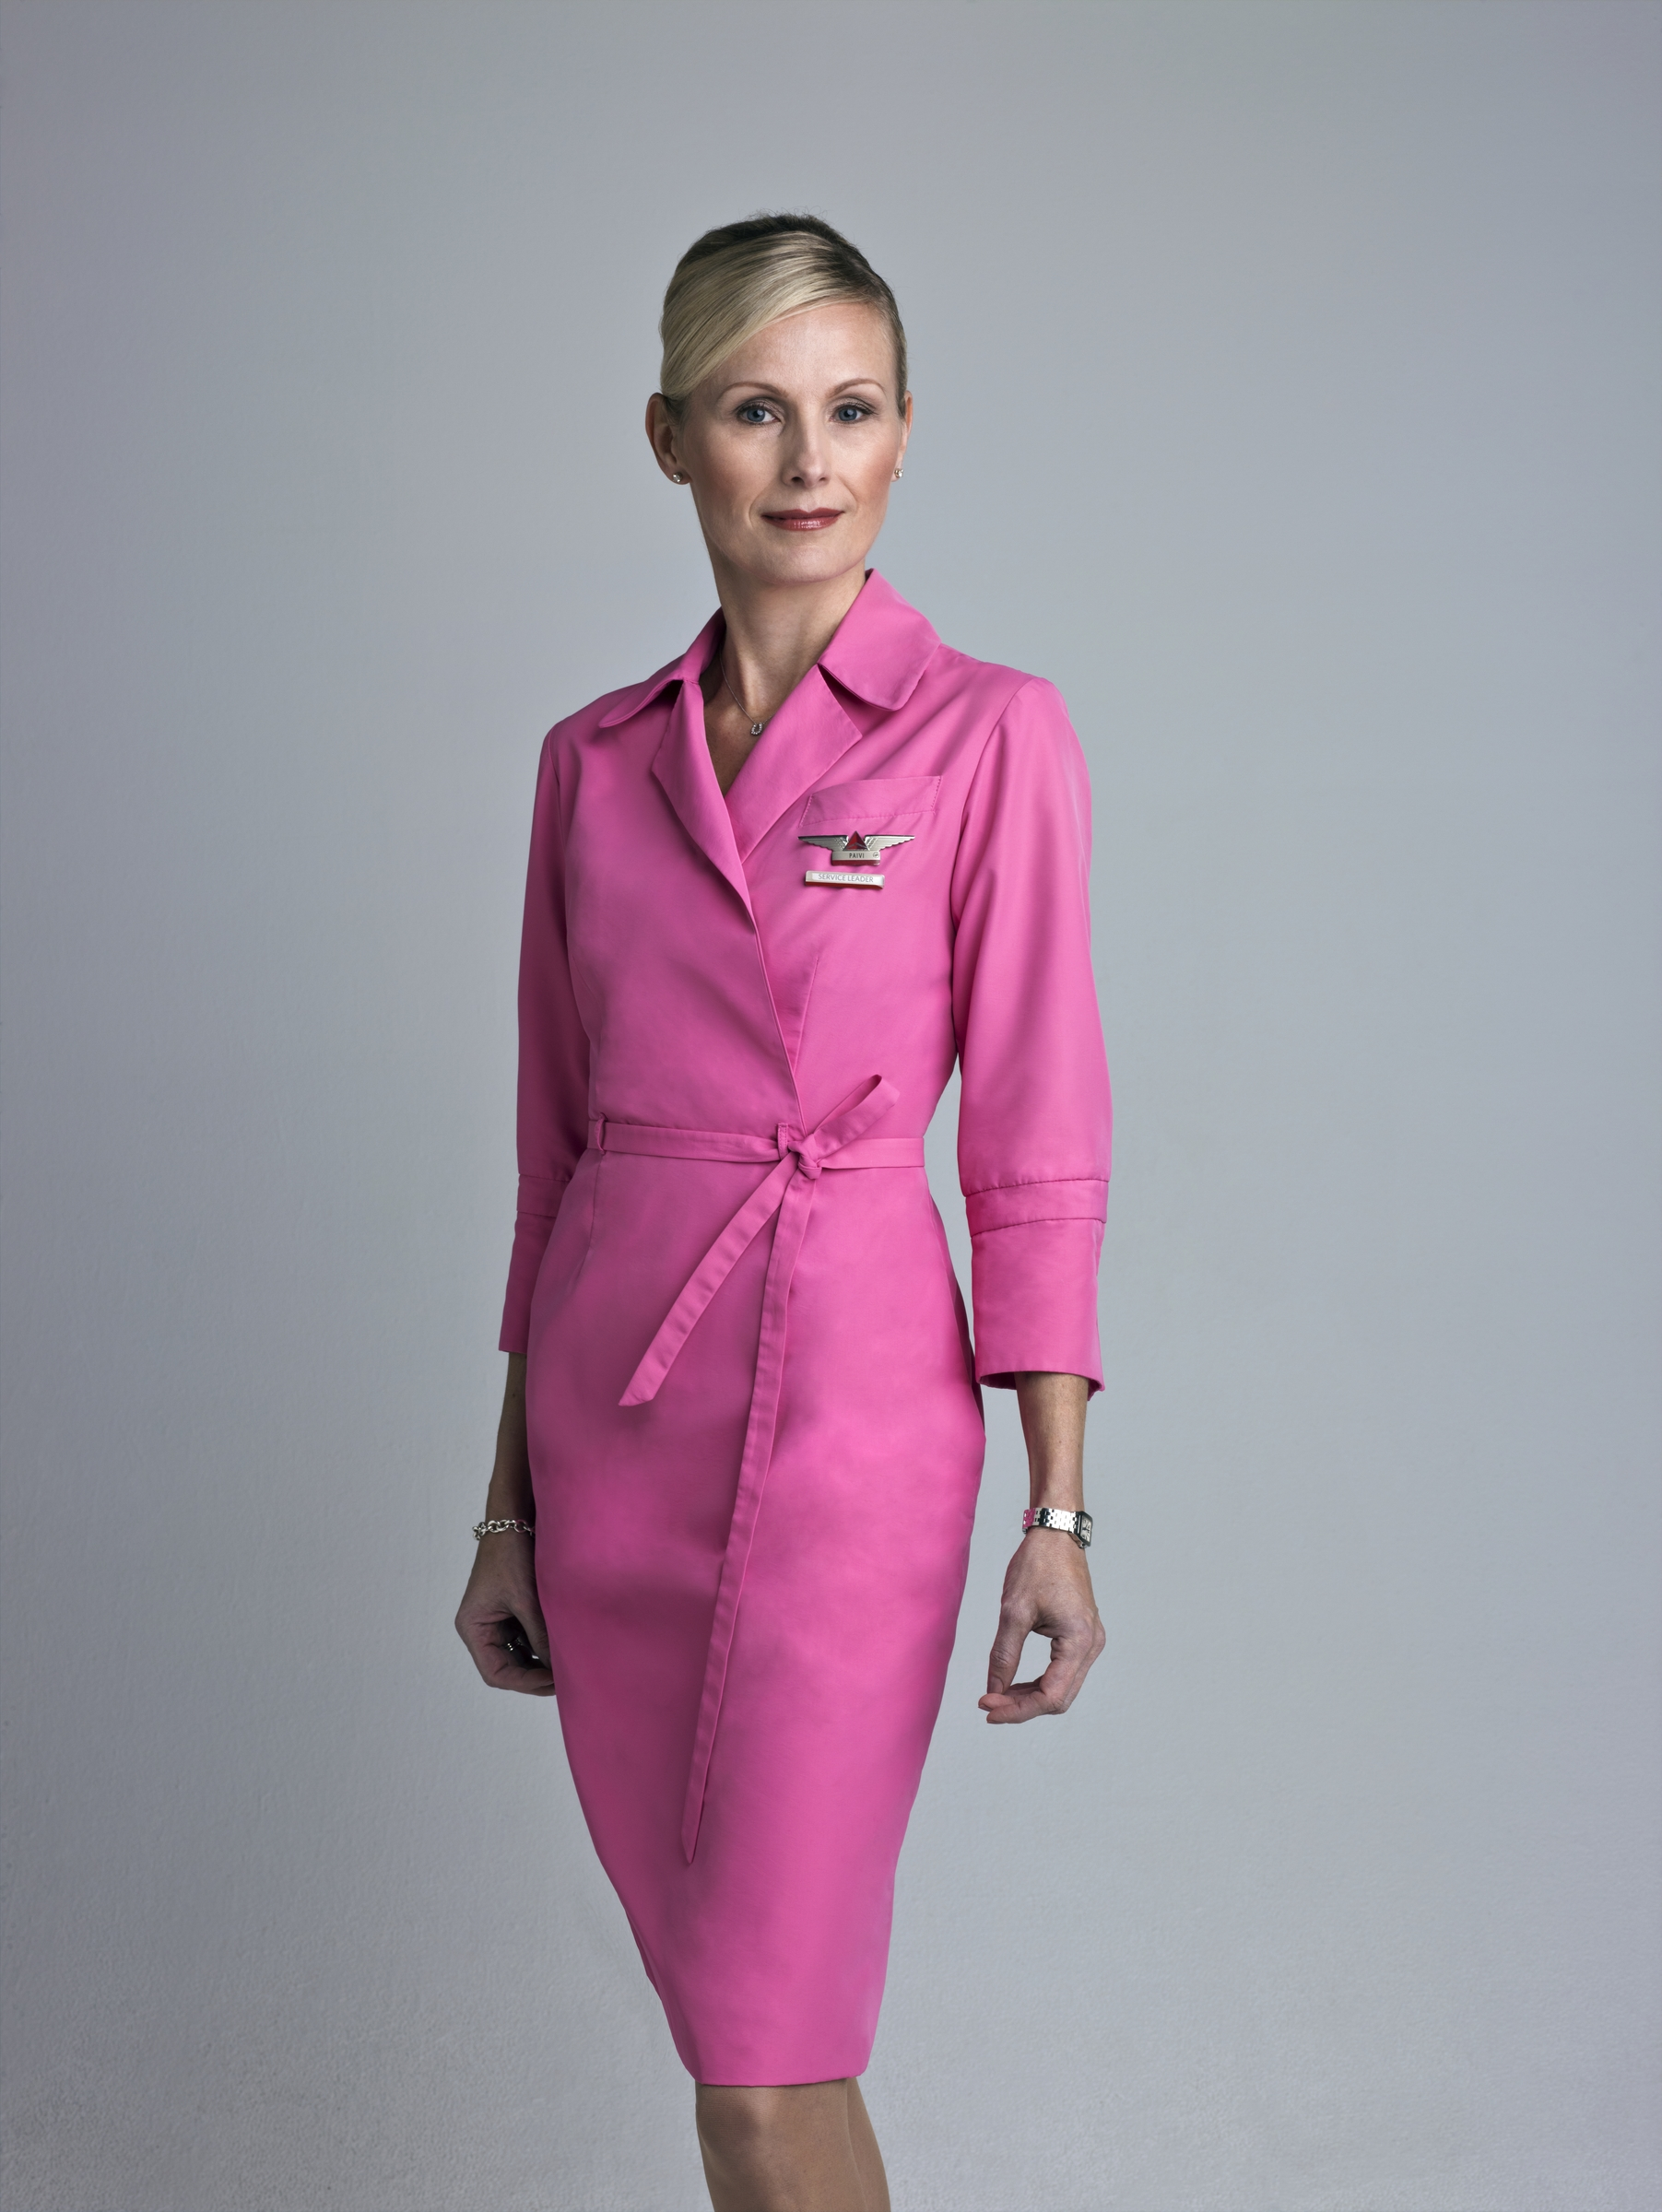 """One little pink dress, one huge statement - Woman standing in pink flight attendant unform"